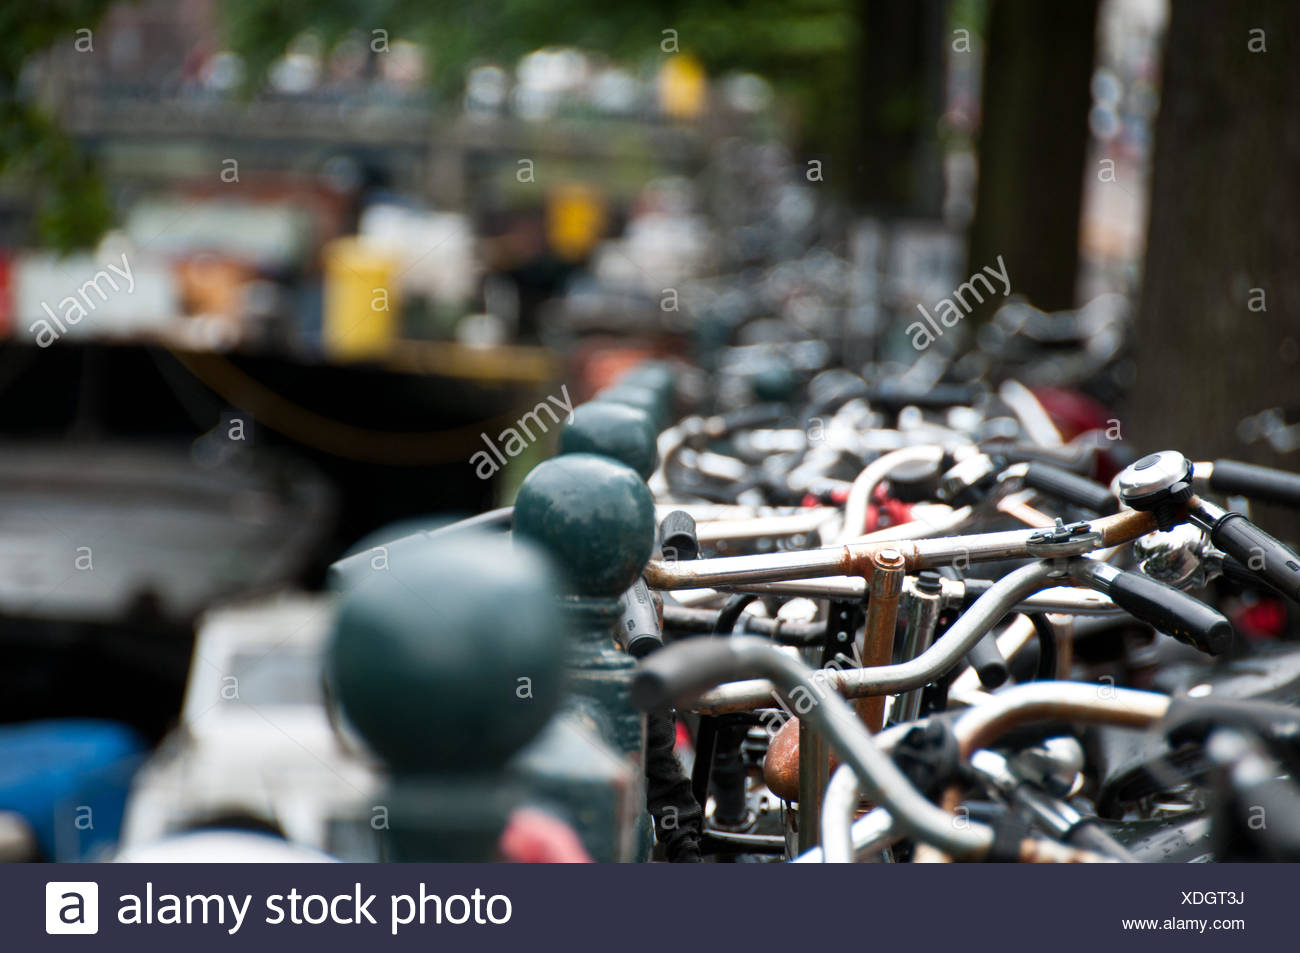 Close-Up Bicycle Handlebars In A Row - Stock Image